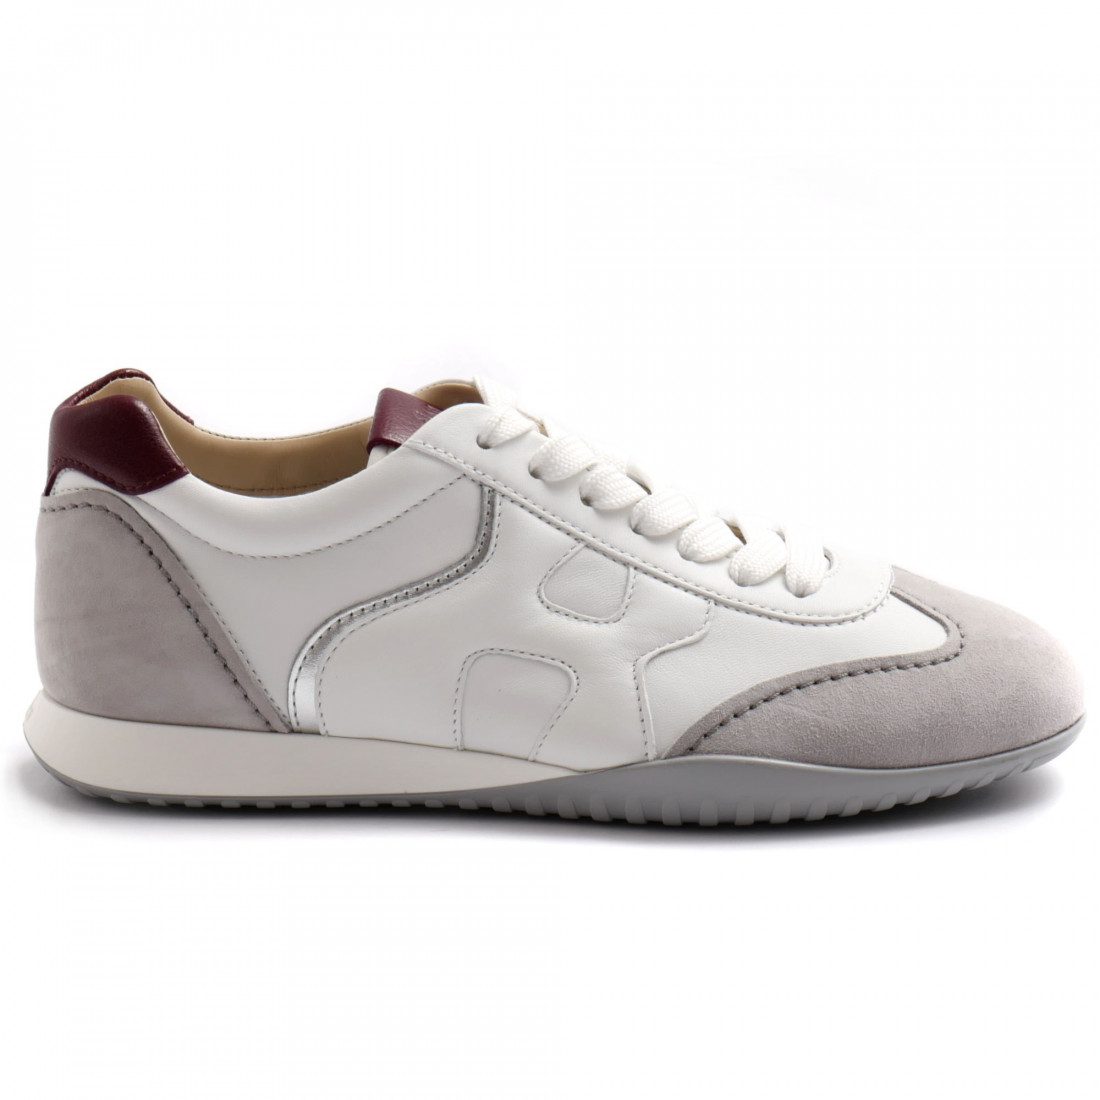 sneakers donna hogan hxw5650do00q0g0sto 8143